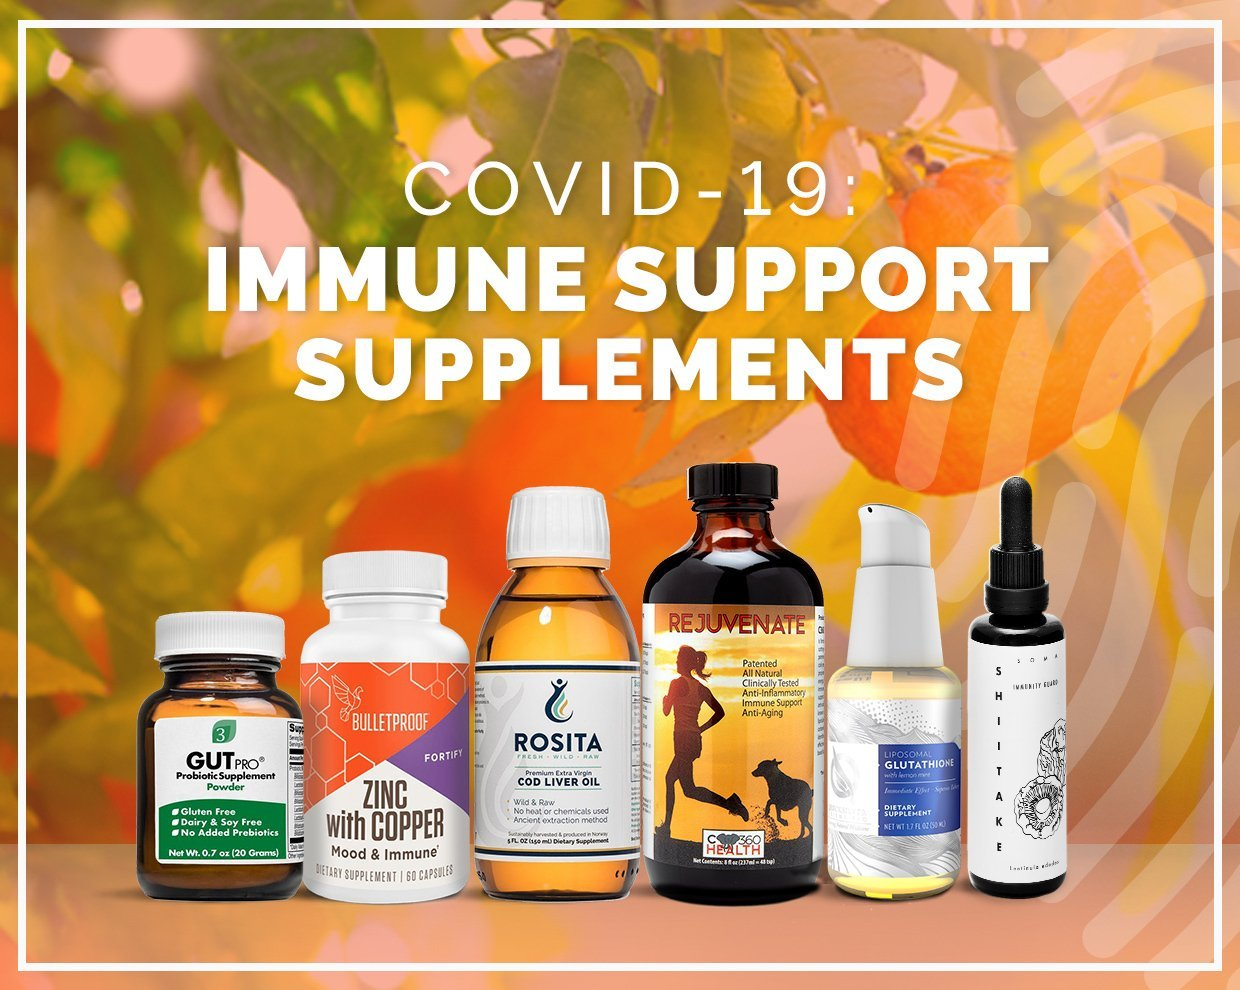 COVID-19 Immune Support Supplements